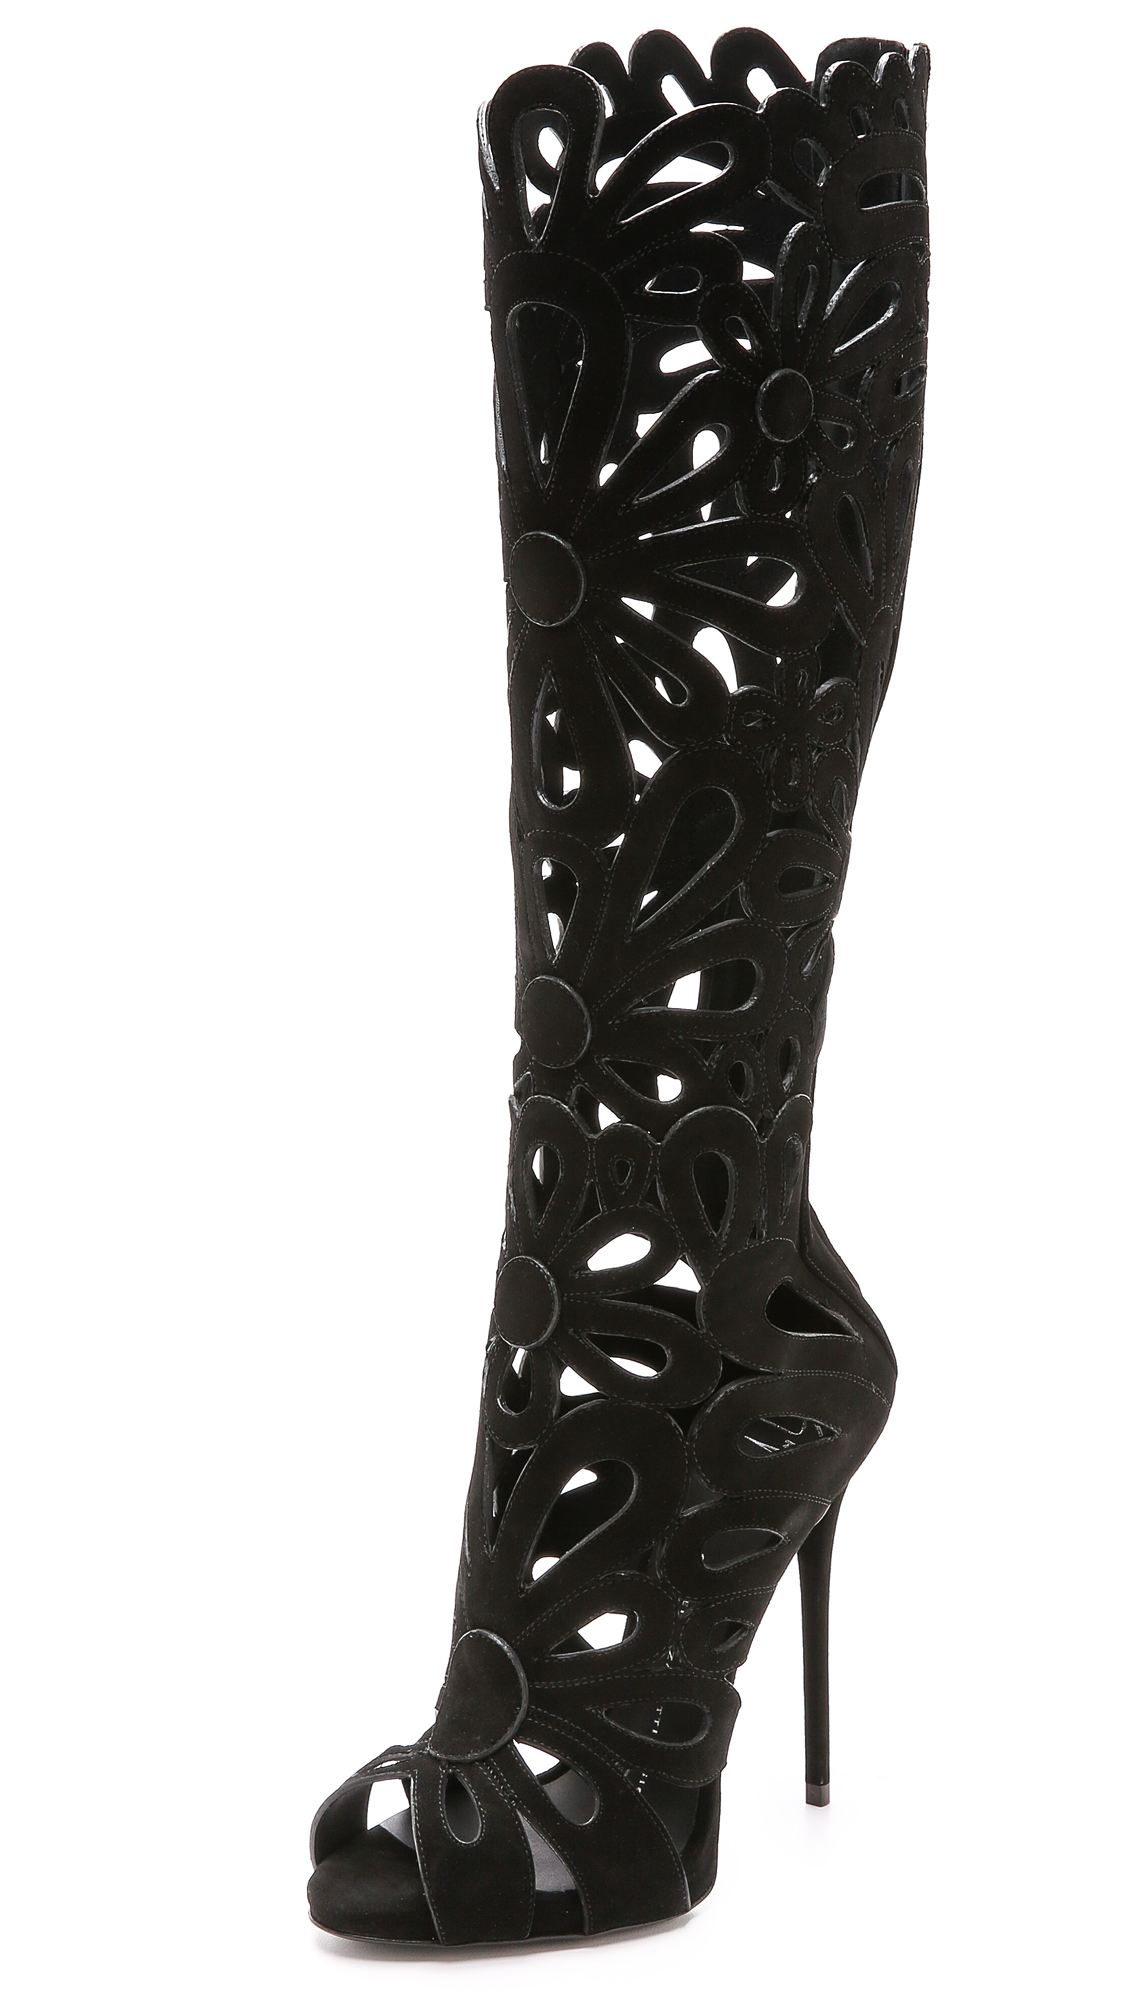 Giuseppe Zanotti 'Coline' Floral Cutout Suede Knee High Boots In Black